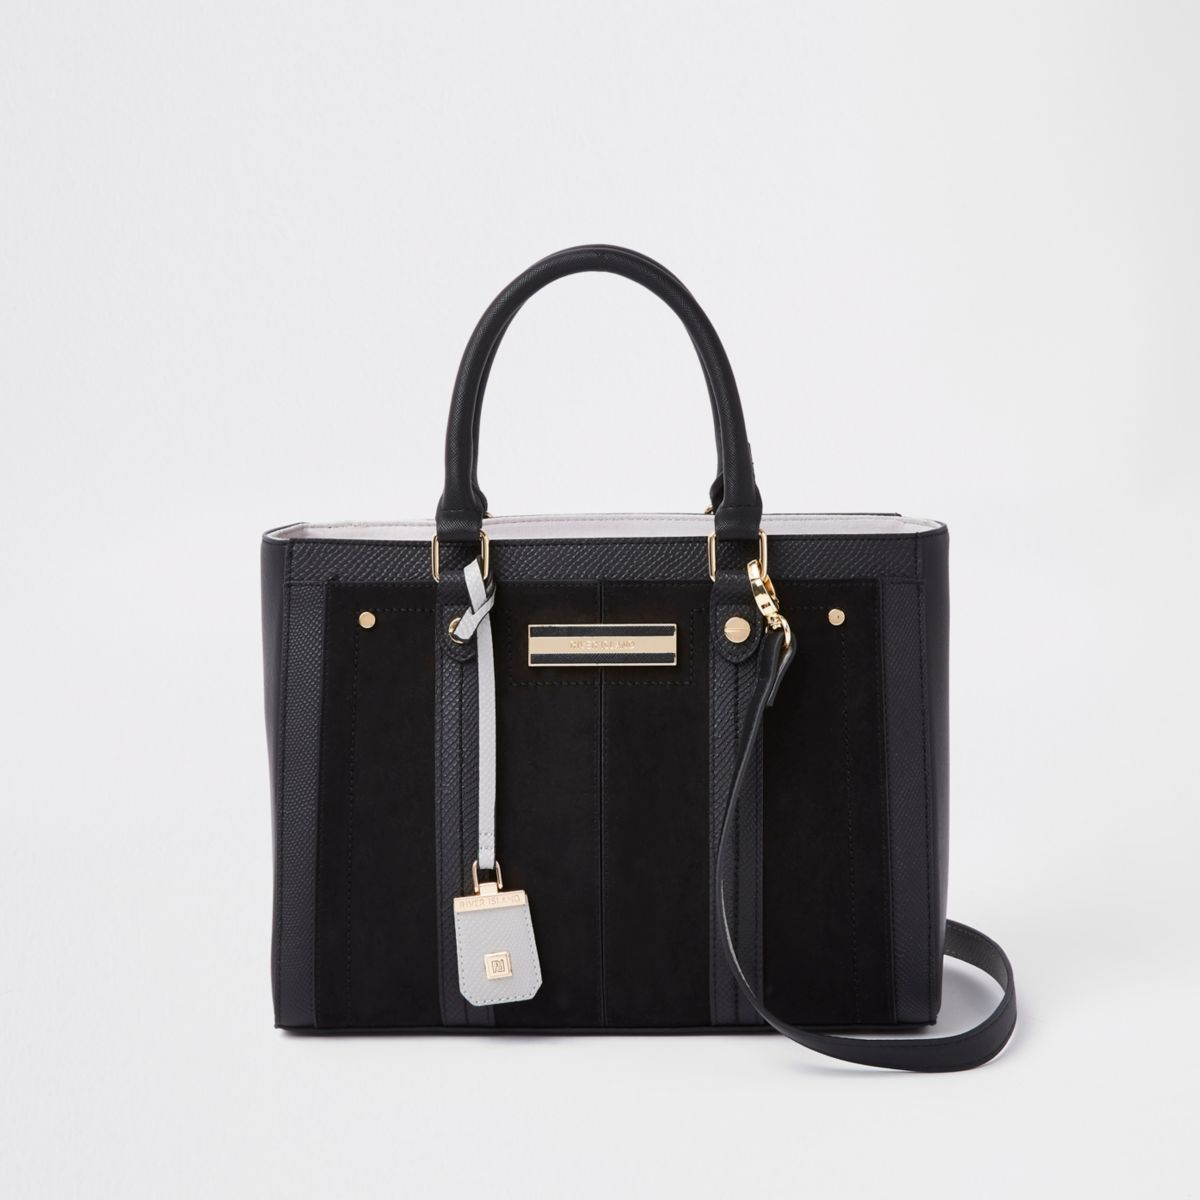 Black faux leather boxy tote bag